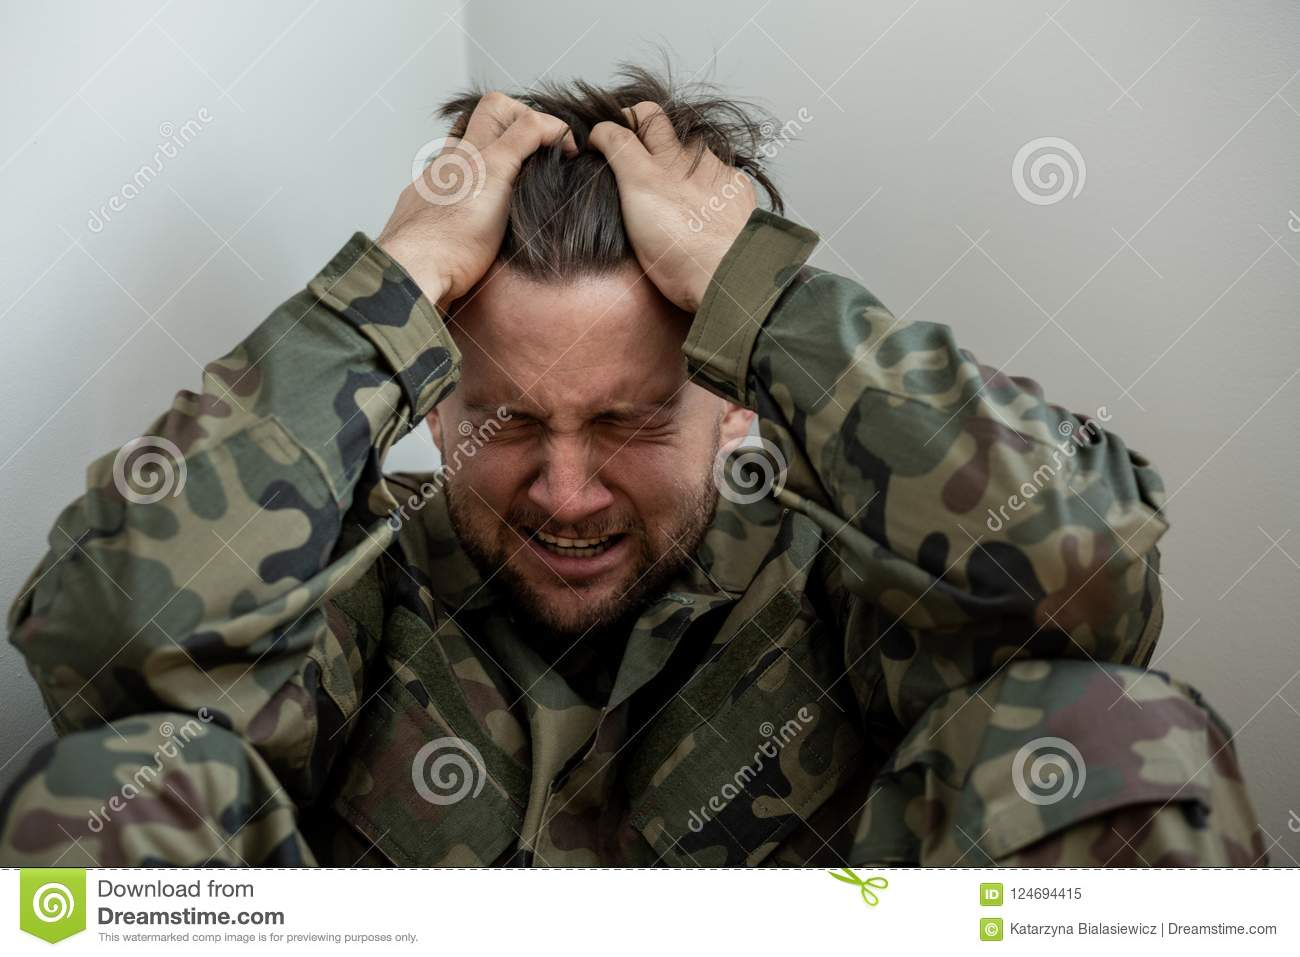 Crying professional soldier with depression and trauma after war